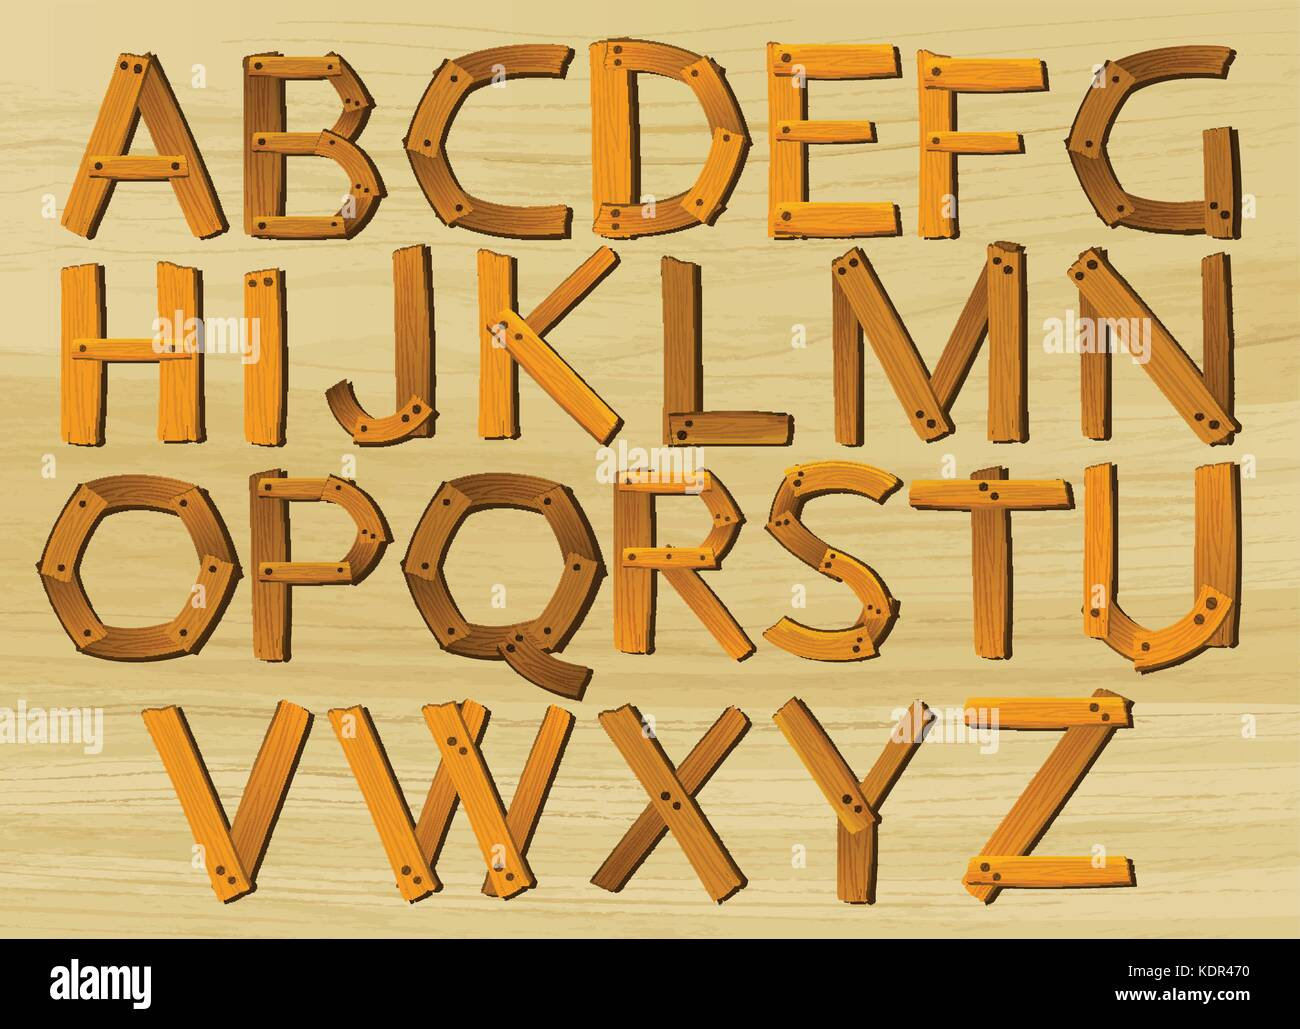 Alphabet characters from A to Z in wooden pattern illustration - Stock Vector